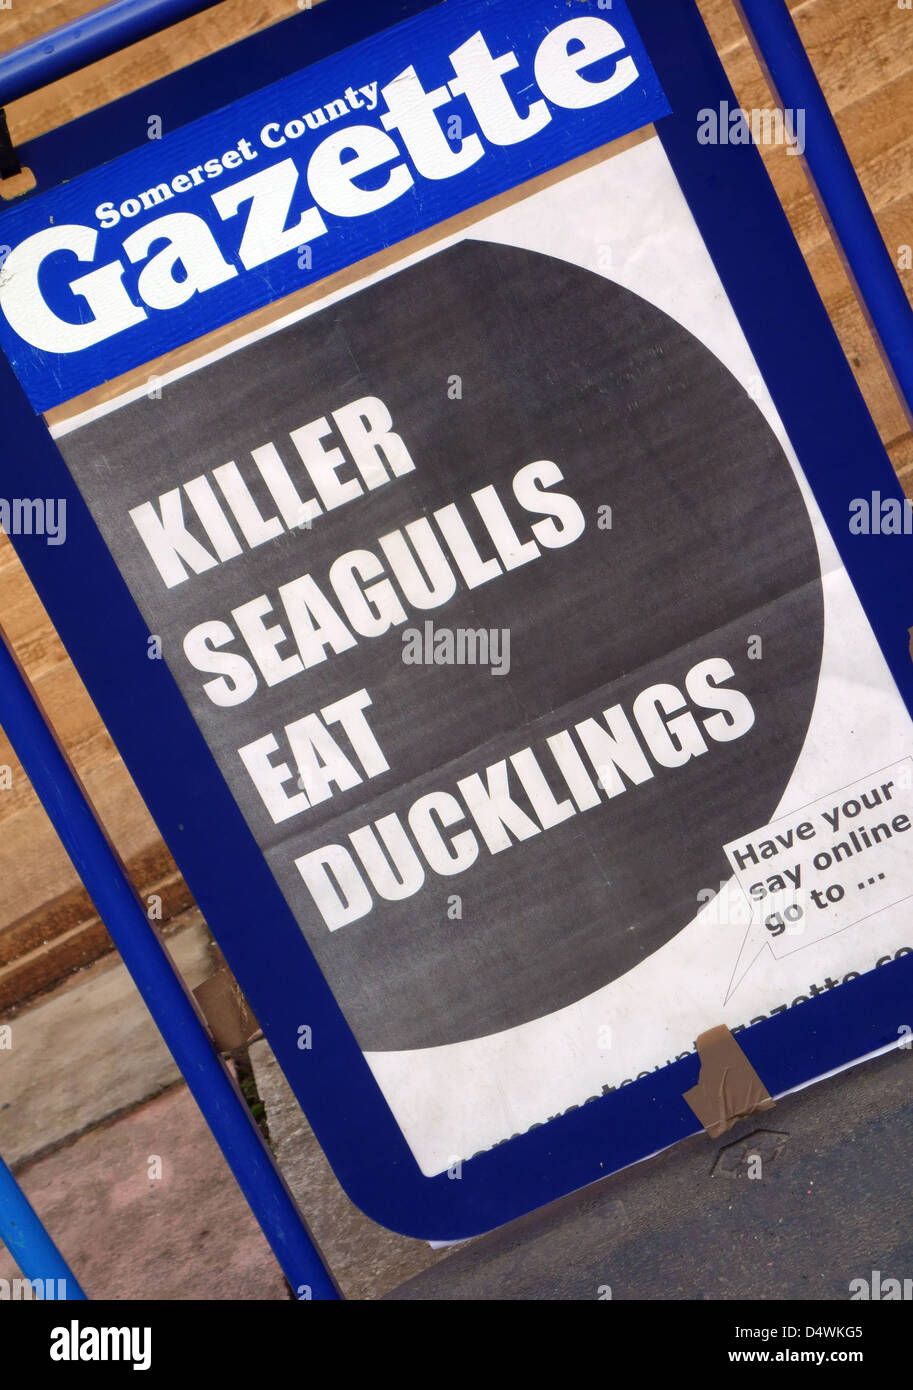 Unusual headline in local newspaper in Somerset, England - Stock Image